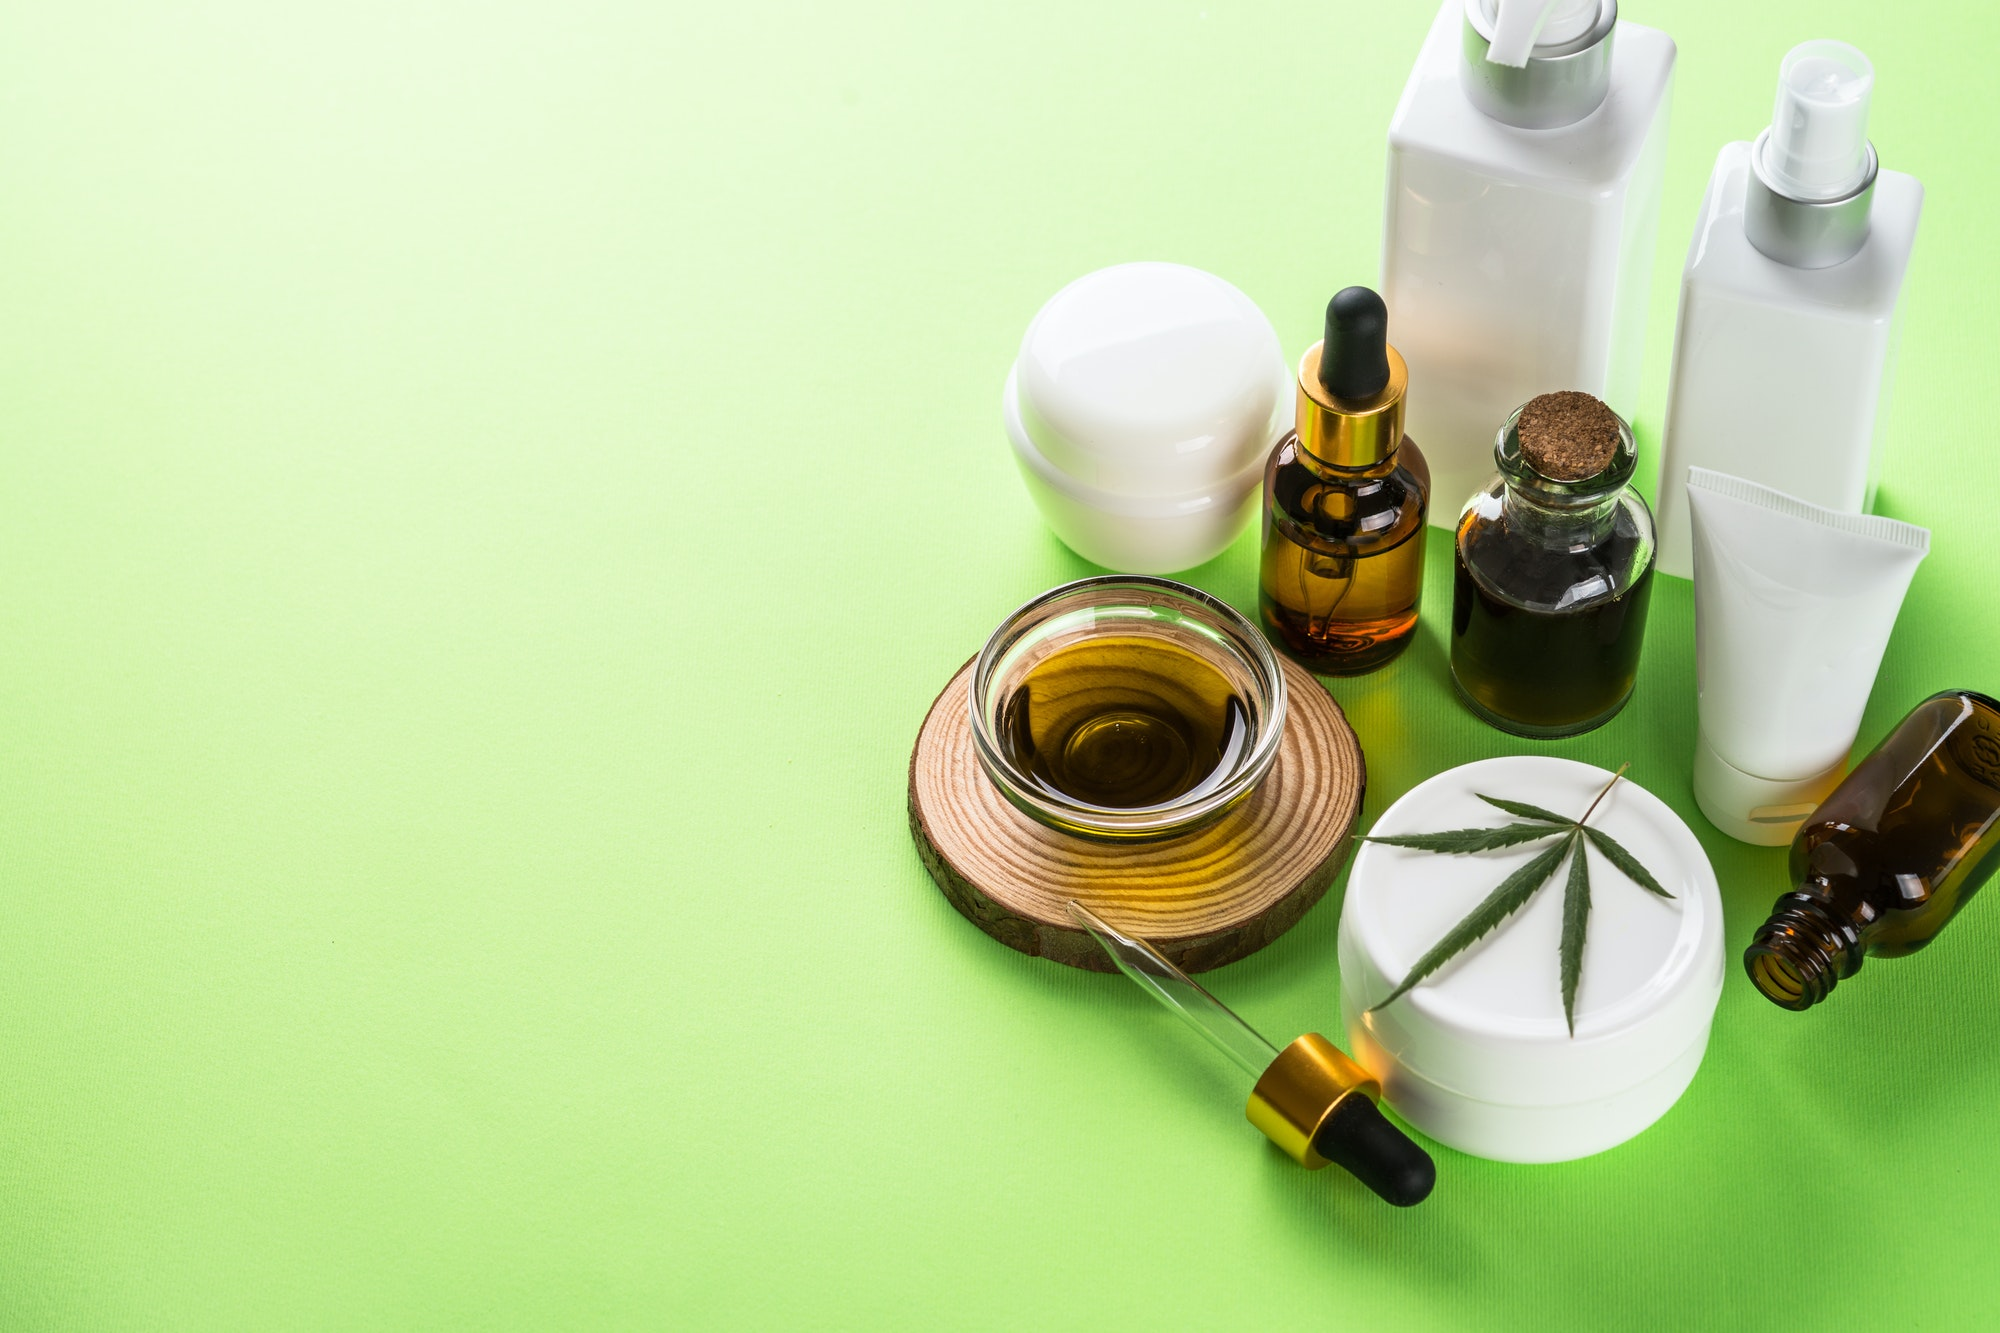 E-commerce business valuation: close-up of cannabis cosmetic products